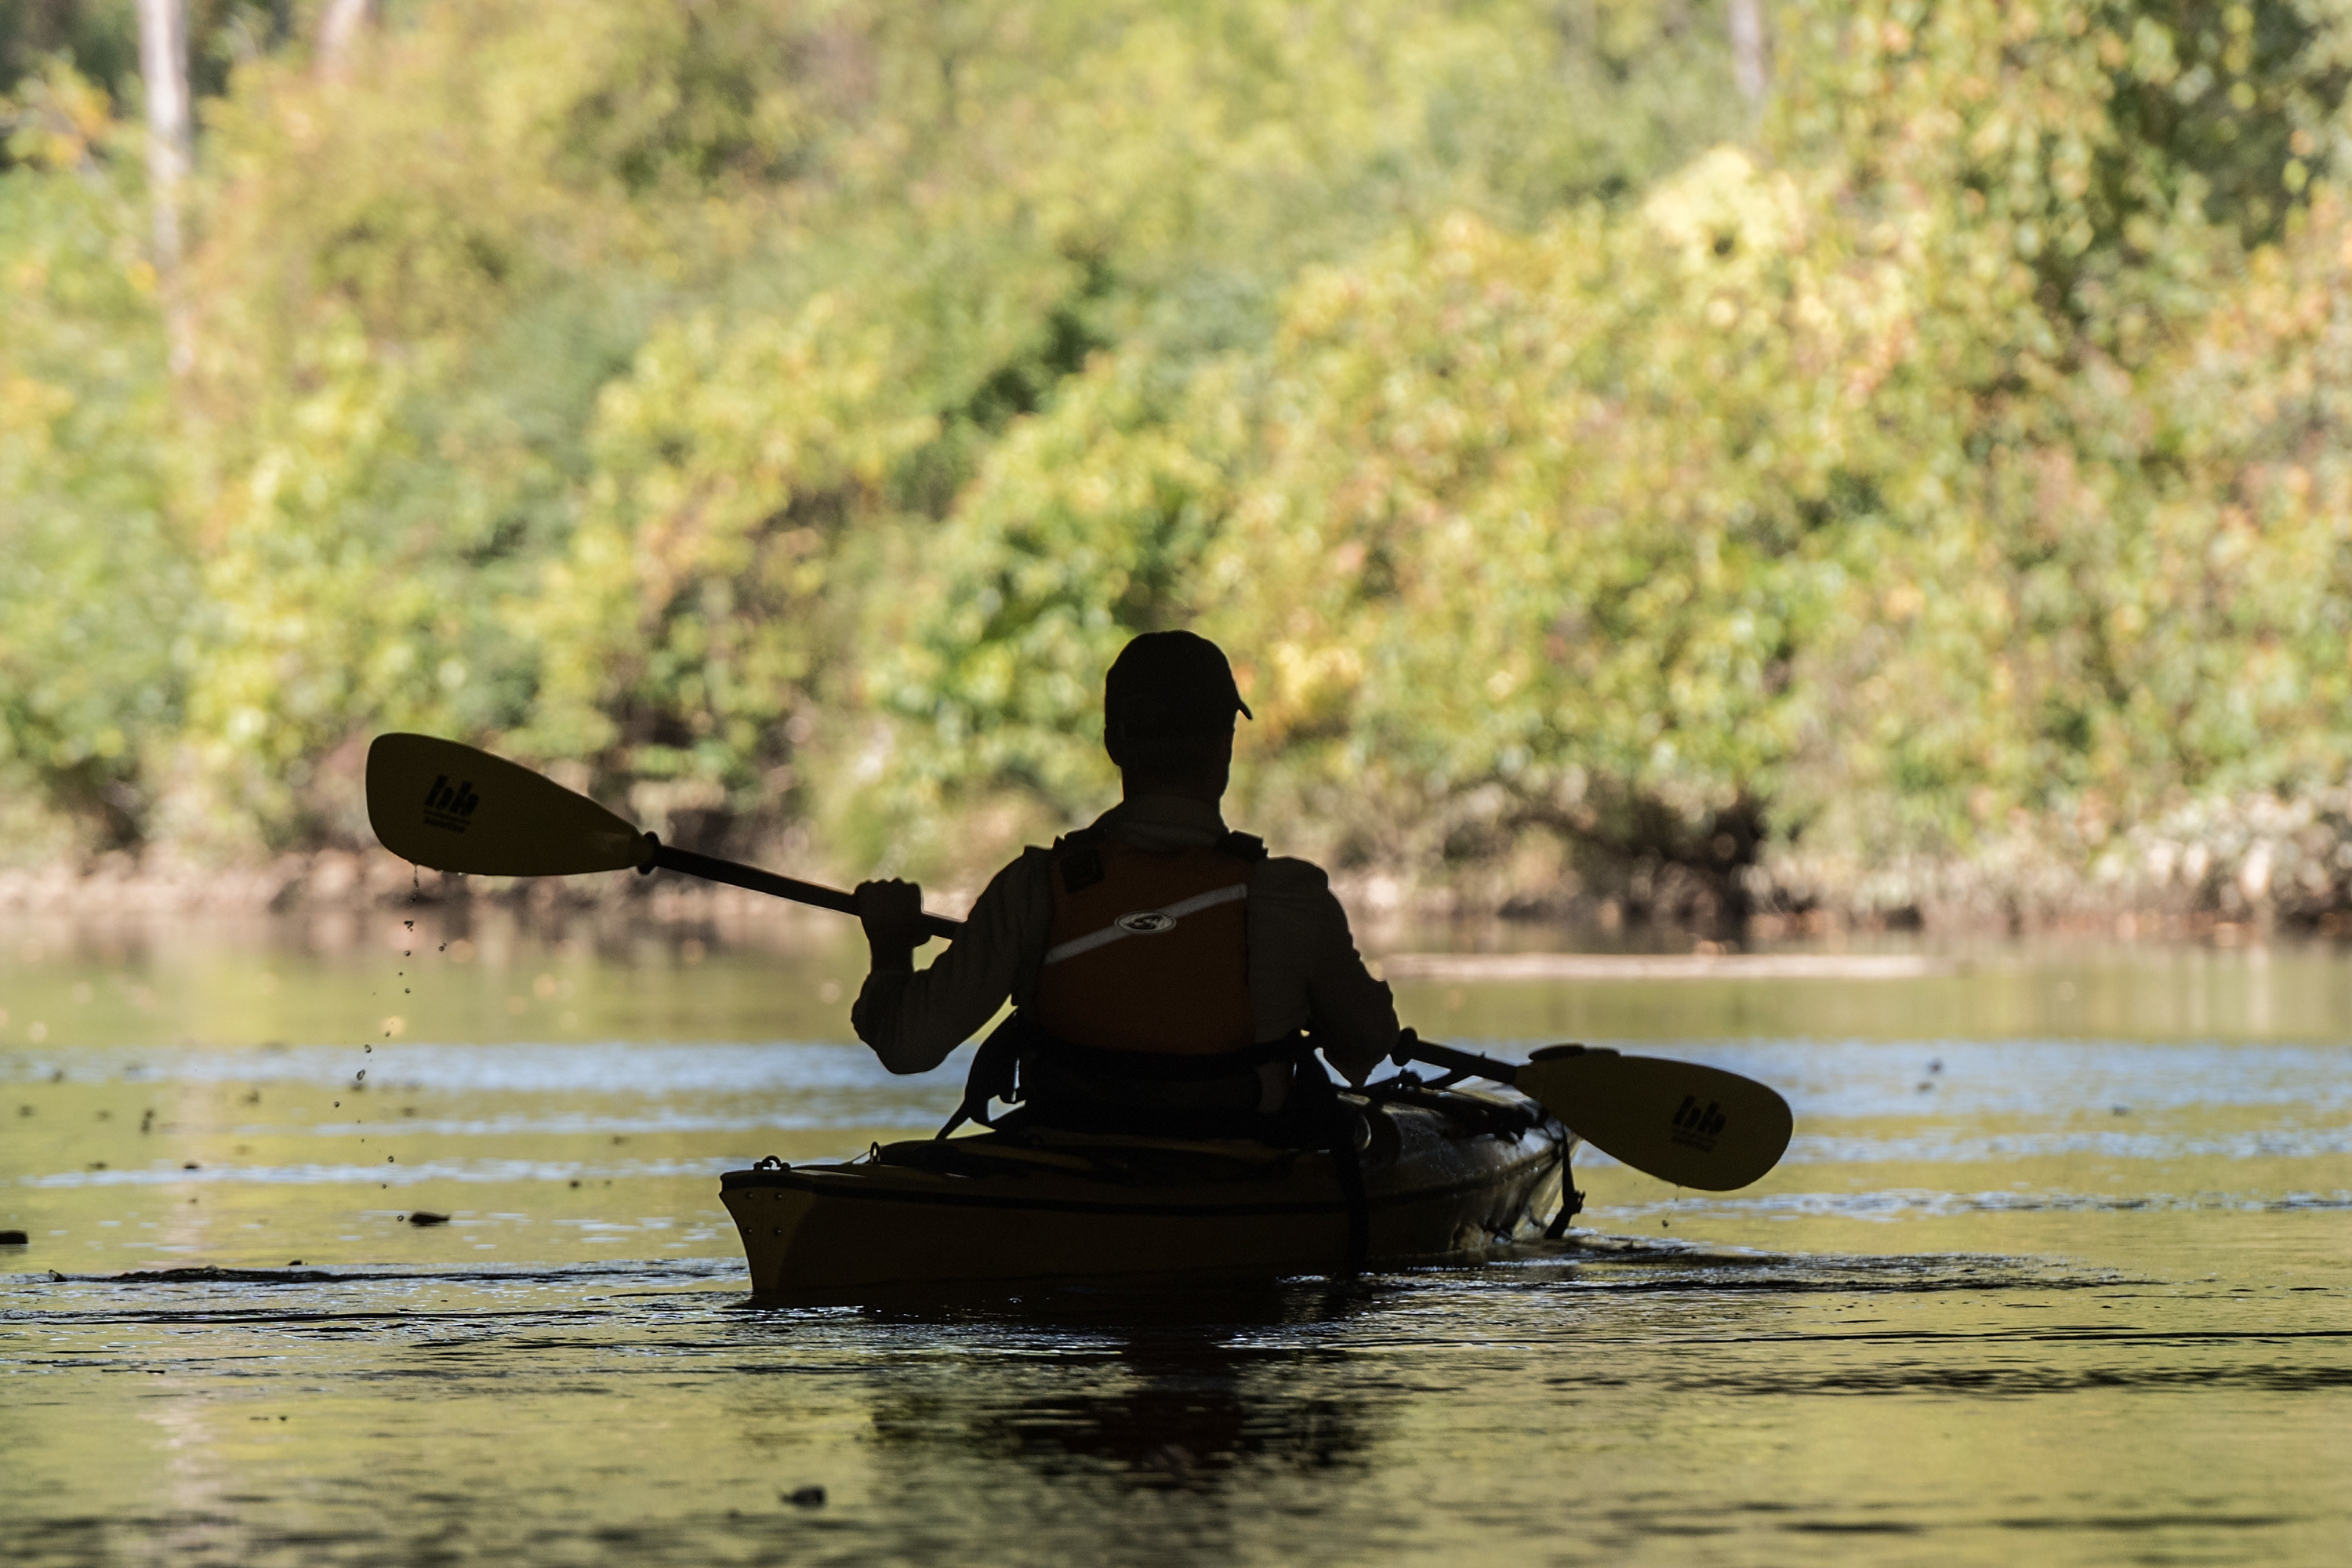 A person with a hat paddles through a body of water in Indiana Dunes Park.